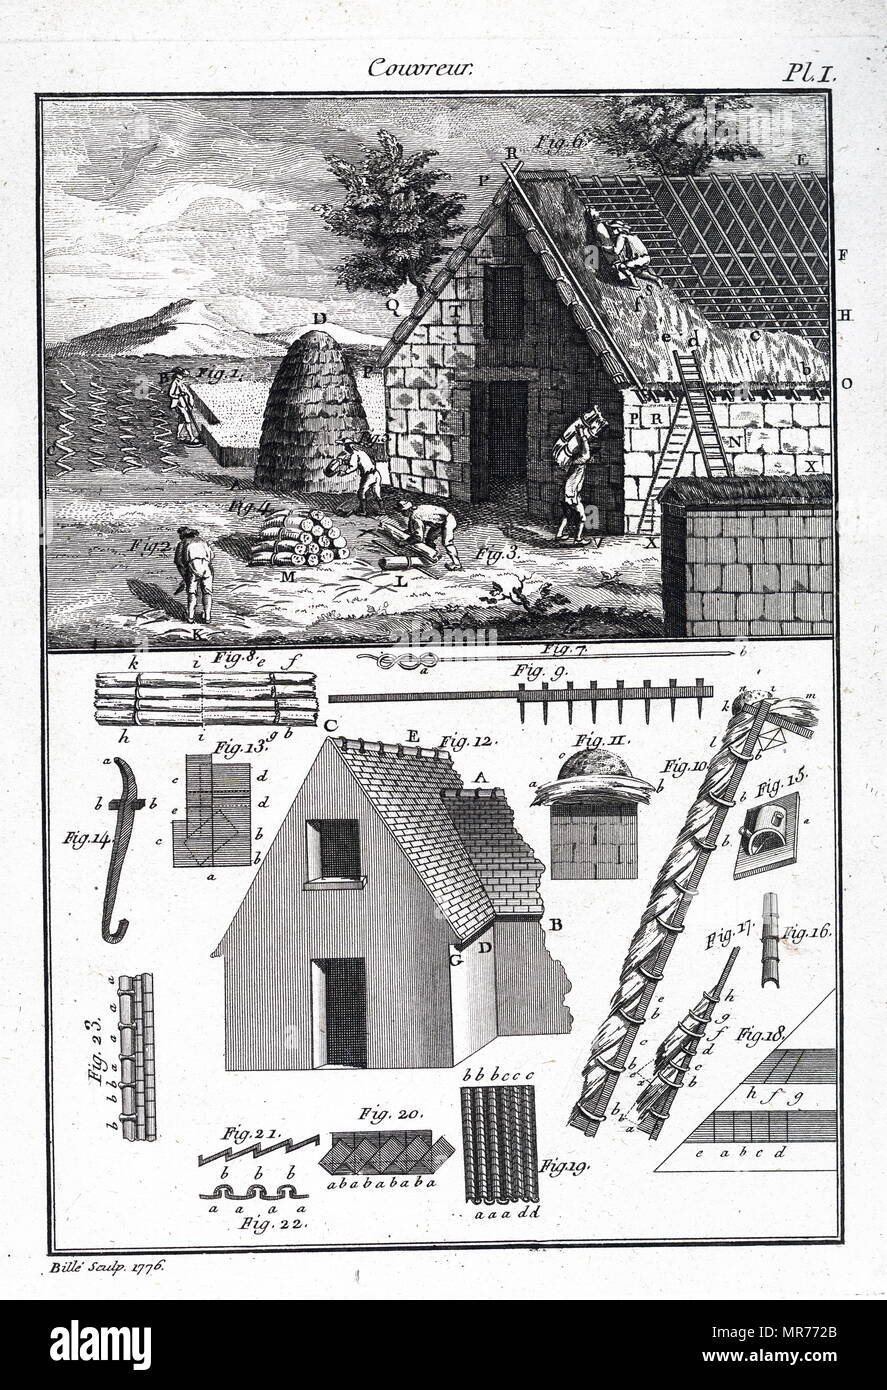 Engraving depicting the various stages in thatching a building from cutting the material to fixing it to the roof. Dated 18th century - Stock Image